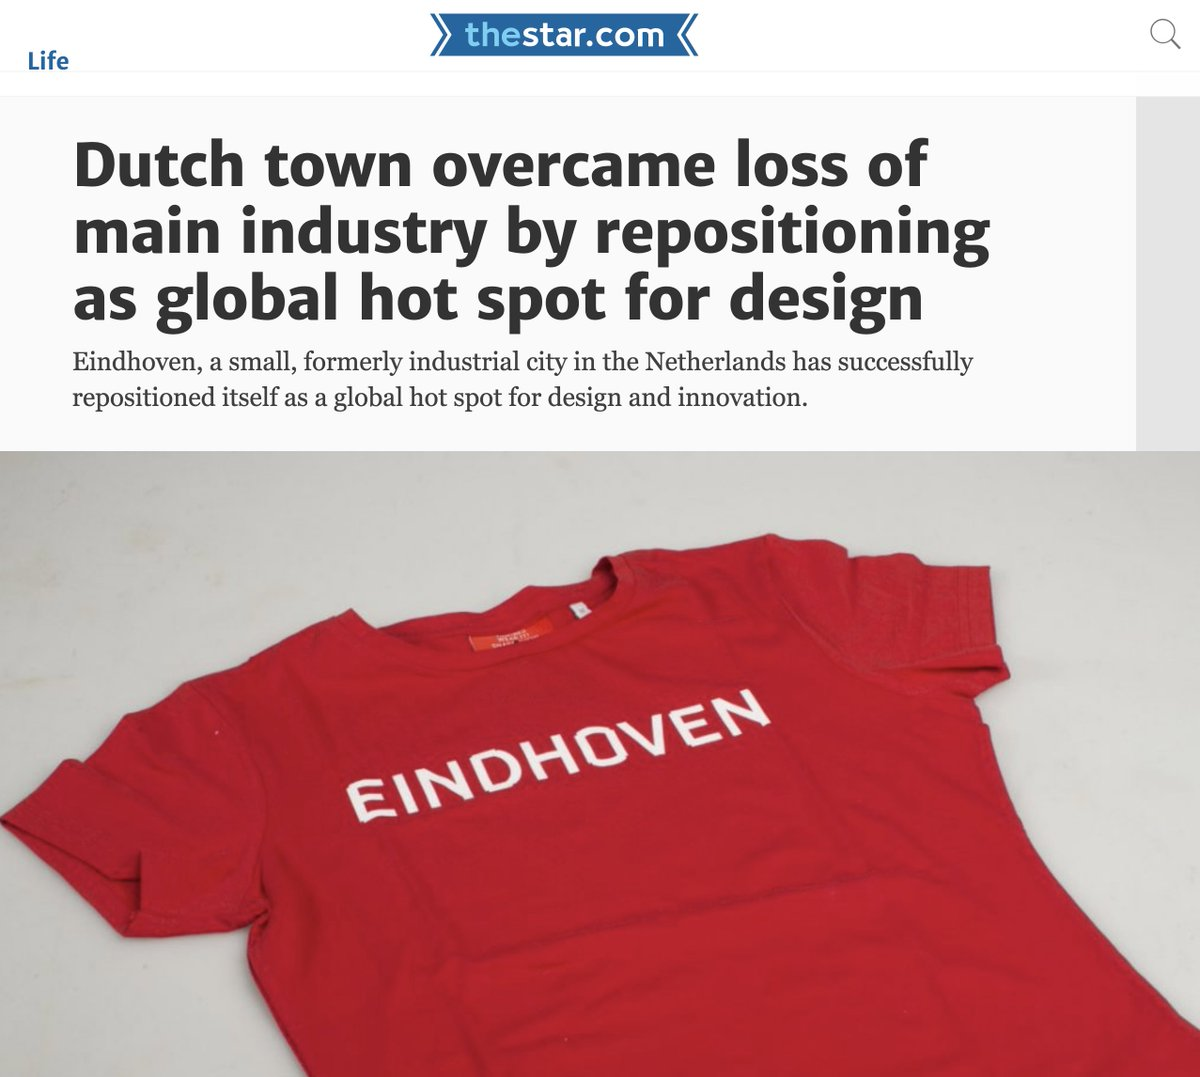 What helps is that the city of #Eindhoven is fully on board with consistent, design-forward branding on everything from its street signs and cultural events, to the look and feel of my T-shirt.  https://www. thestar.com/life/2017/11/0 4/dutch-town-overcame-loss-of-main-industry-by-repositioning-as-global-hot-spot-for-design.html &nbsp; …  via @torontostar<br>http://pic.twitter.com/6YwAawMP2T